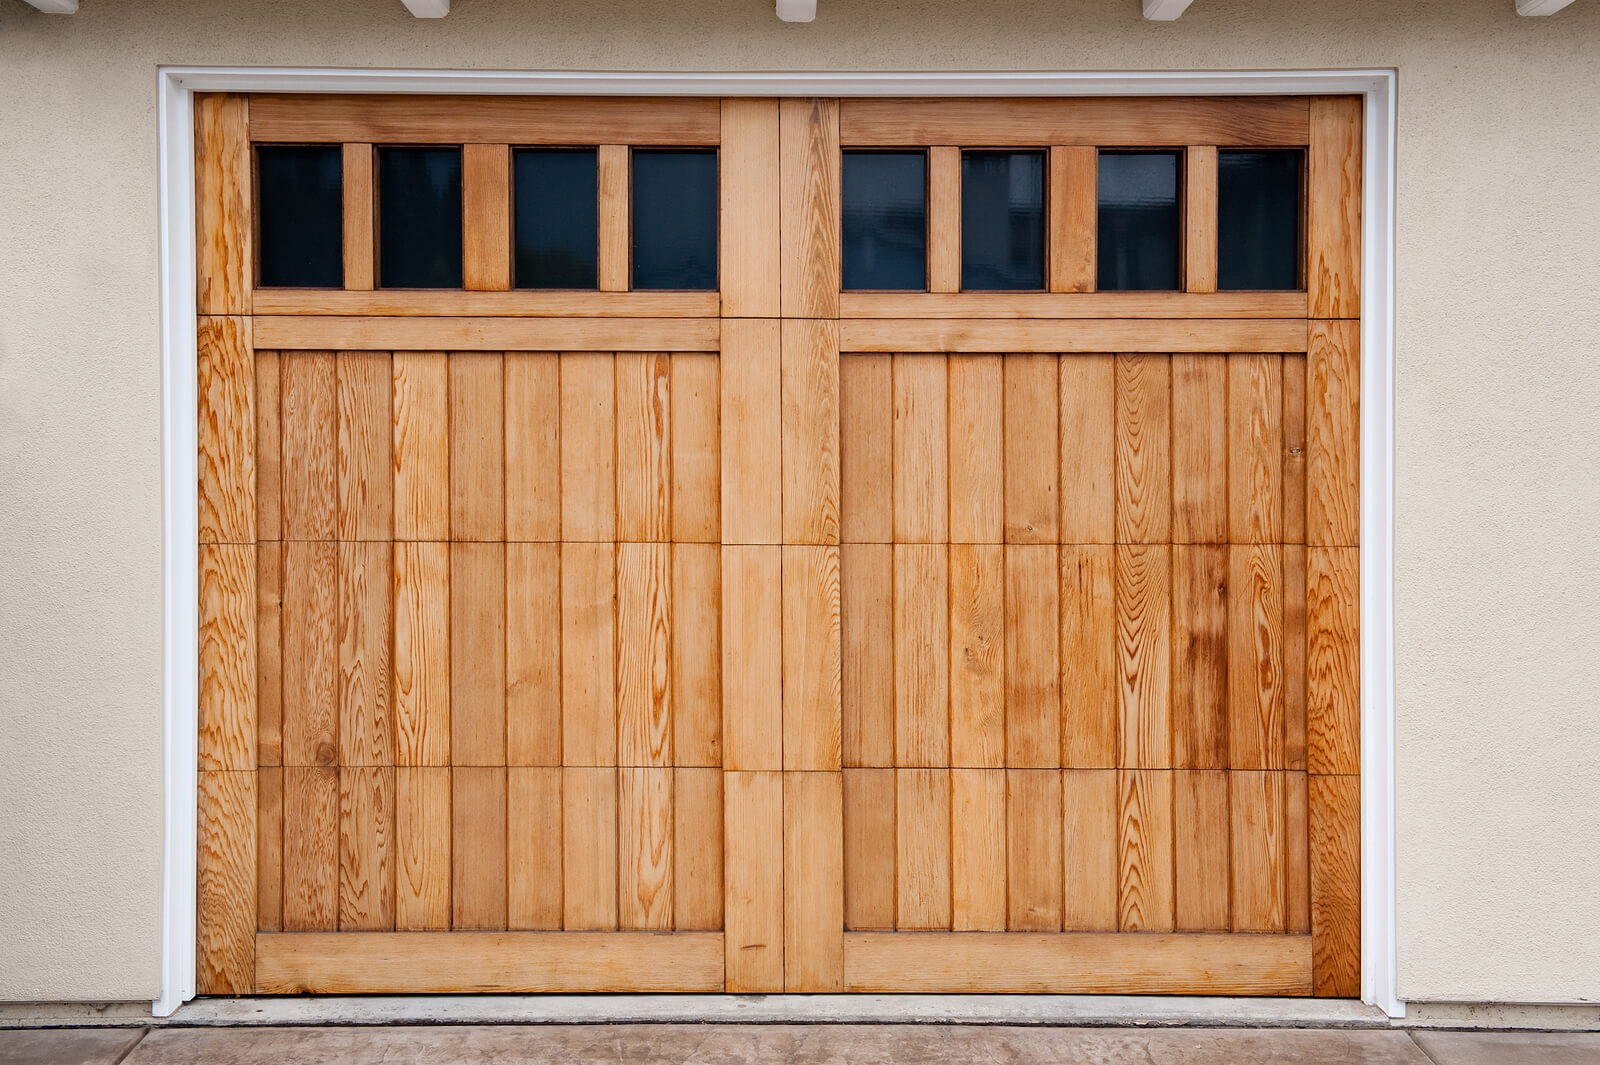 PICKING GARAGE DOORS